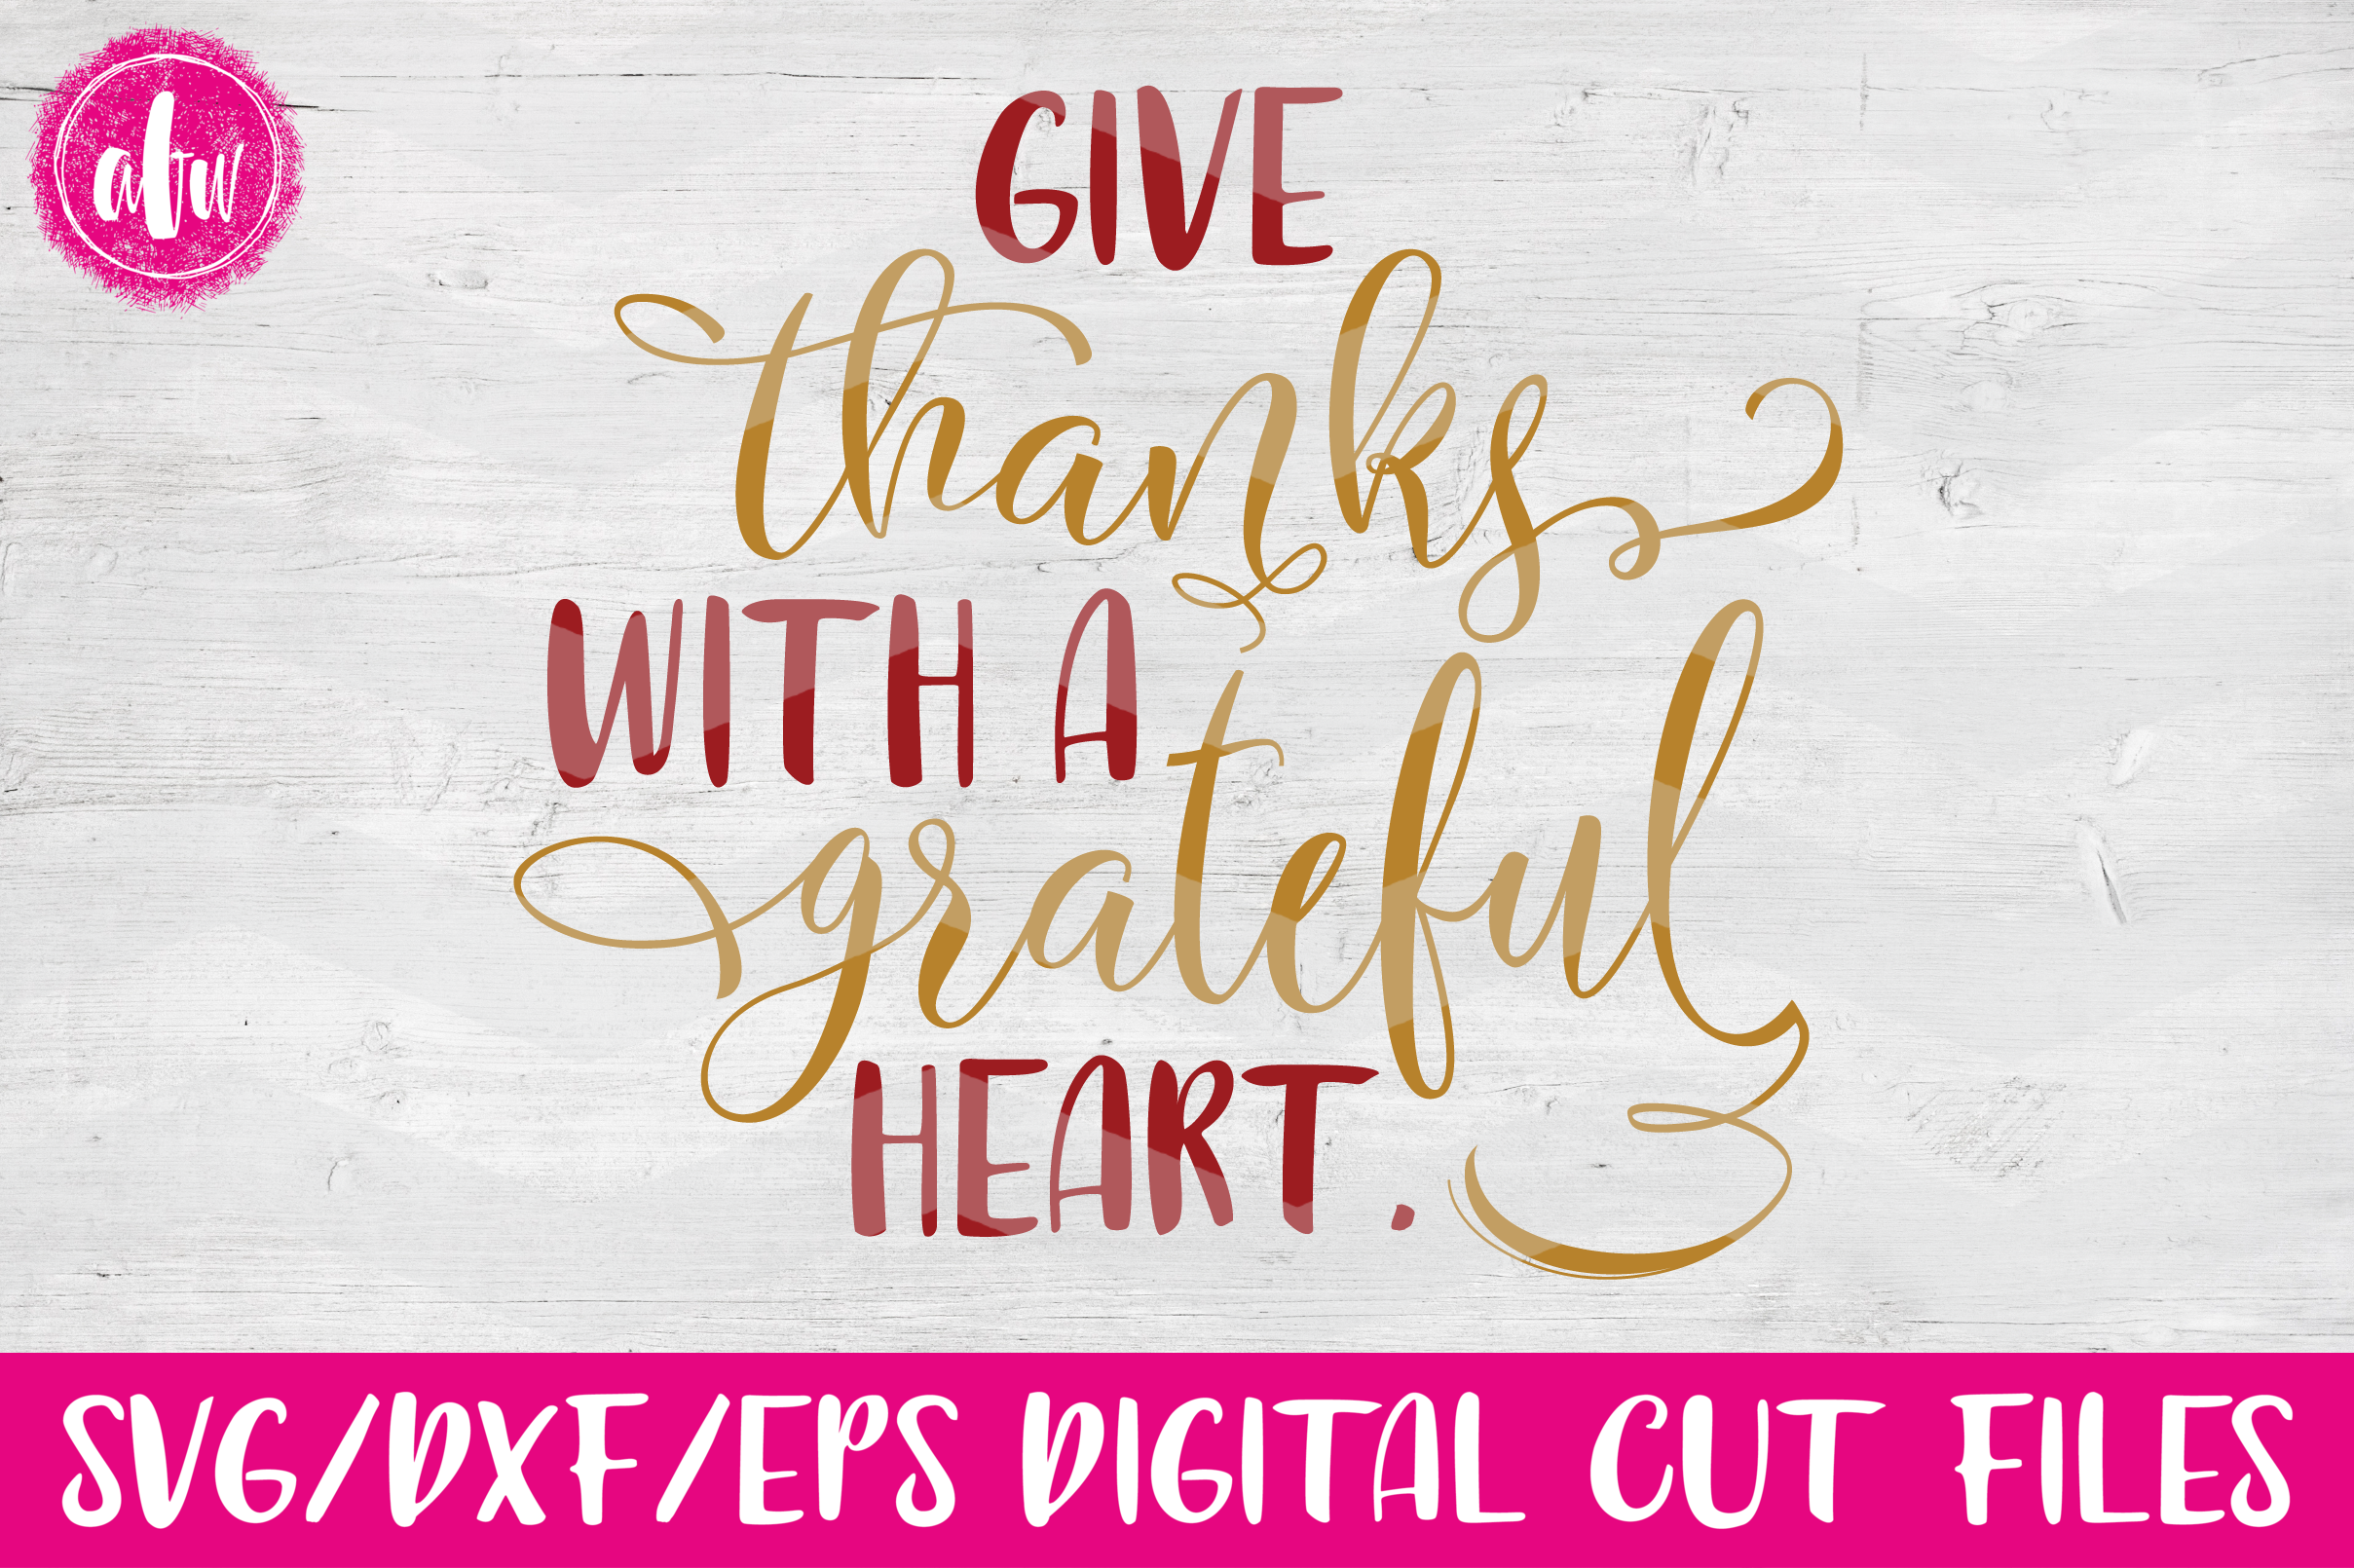 Give Thanks With a Grateful Heart - SVG, DXF, EPS Cut Files example image 1